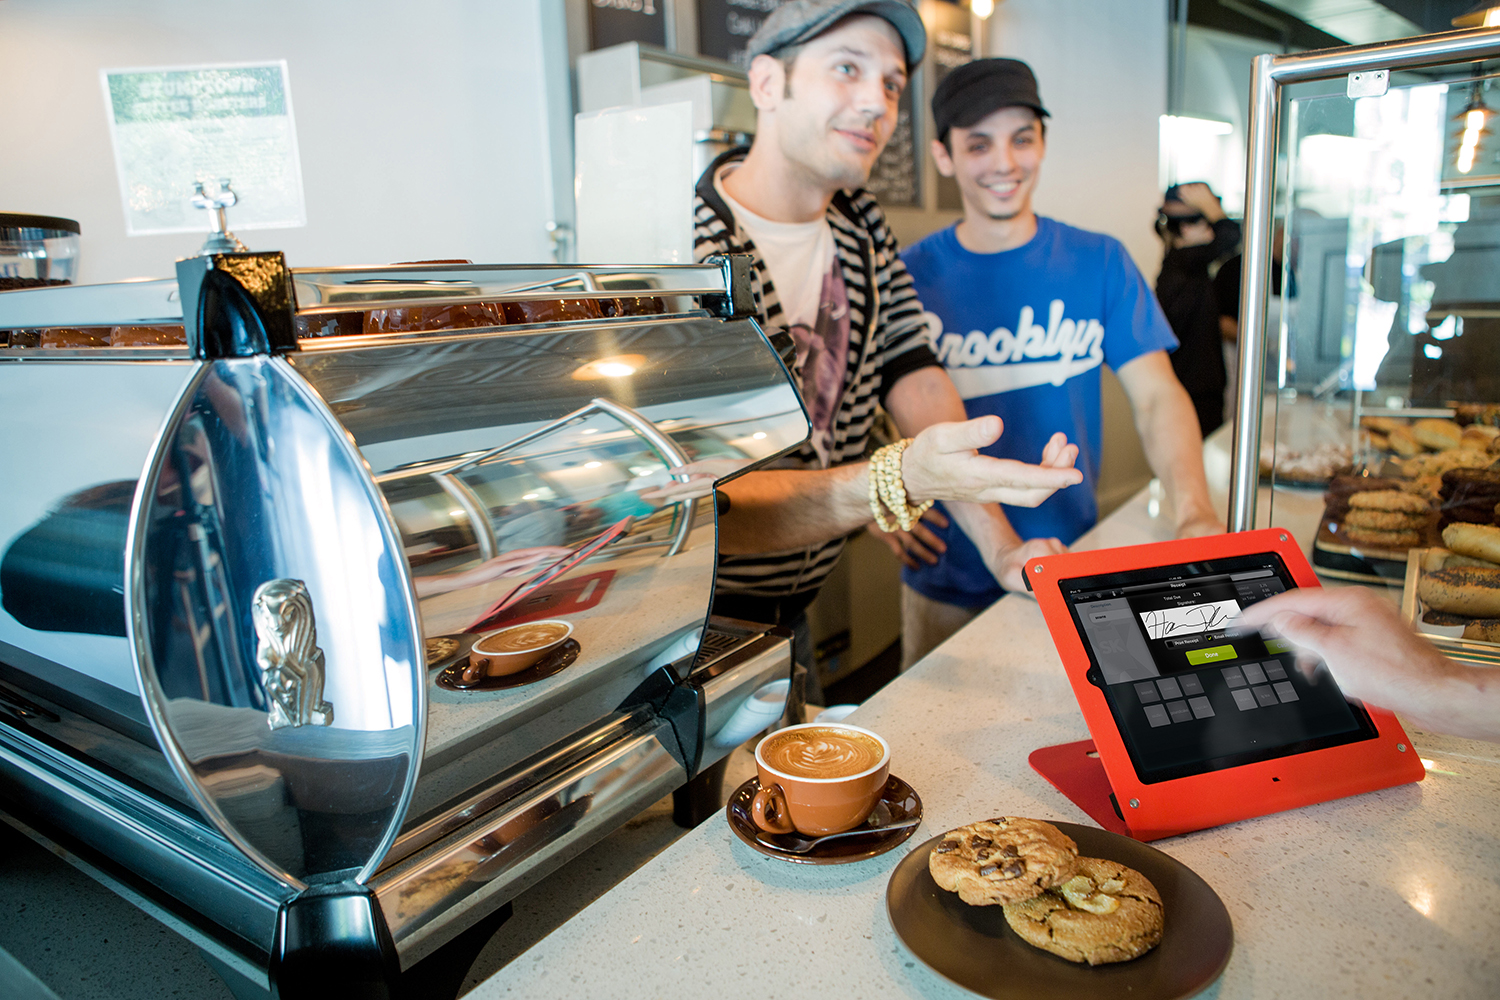 Creative Uses of the Apple iPad for Coffee Shops